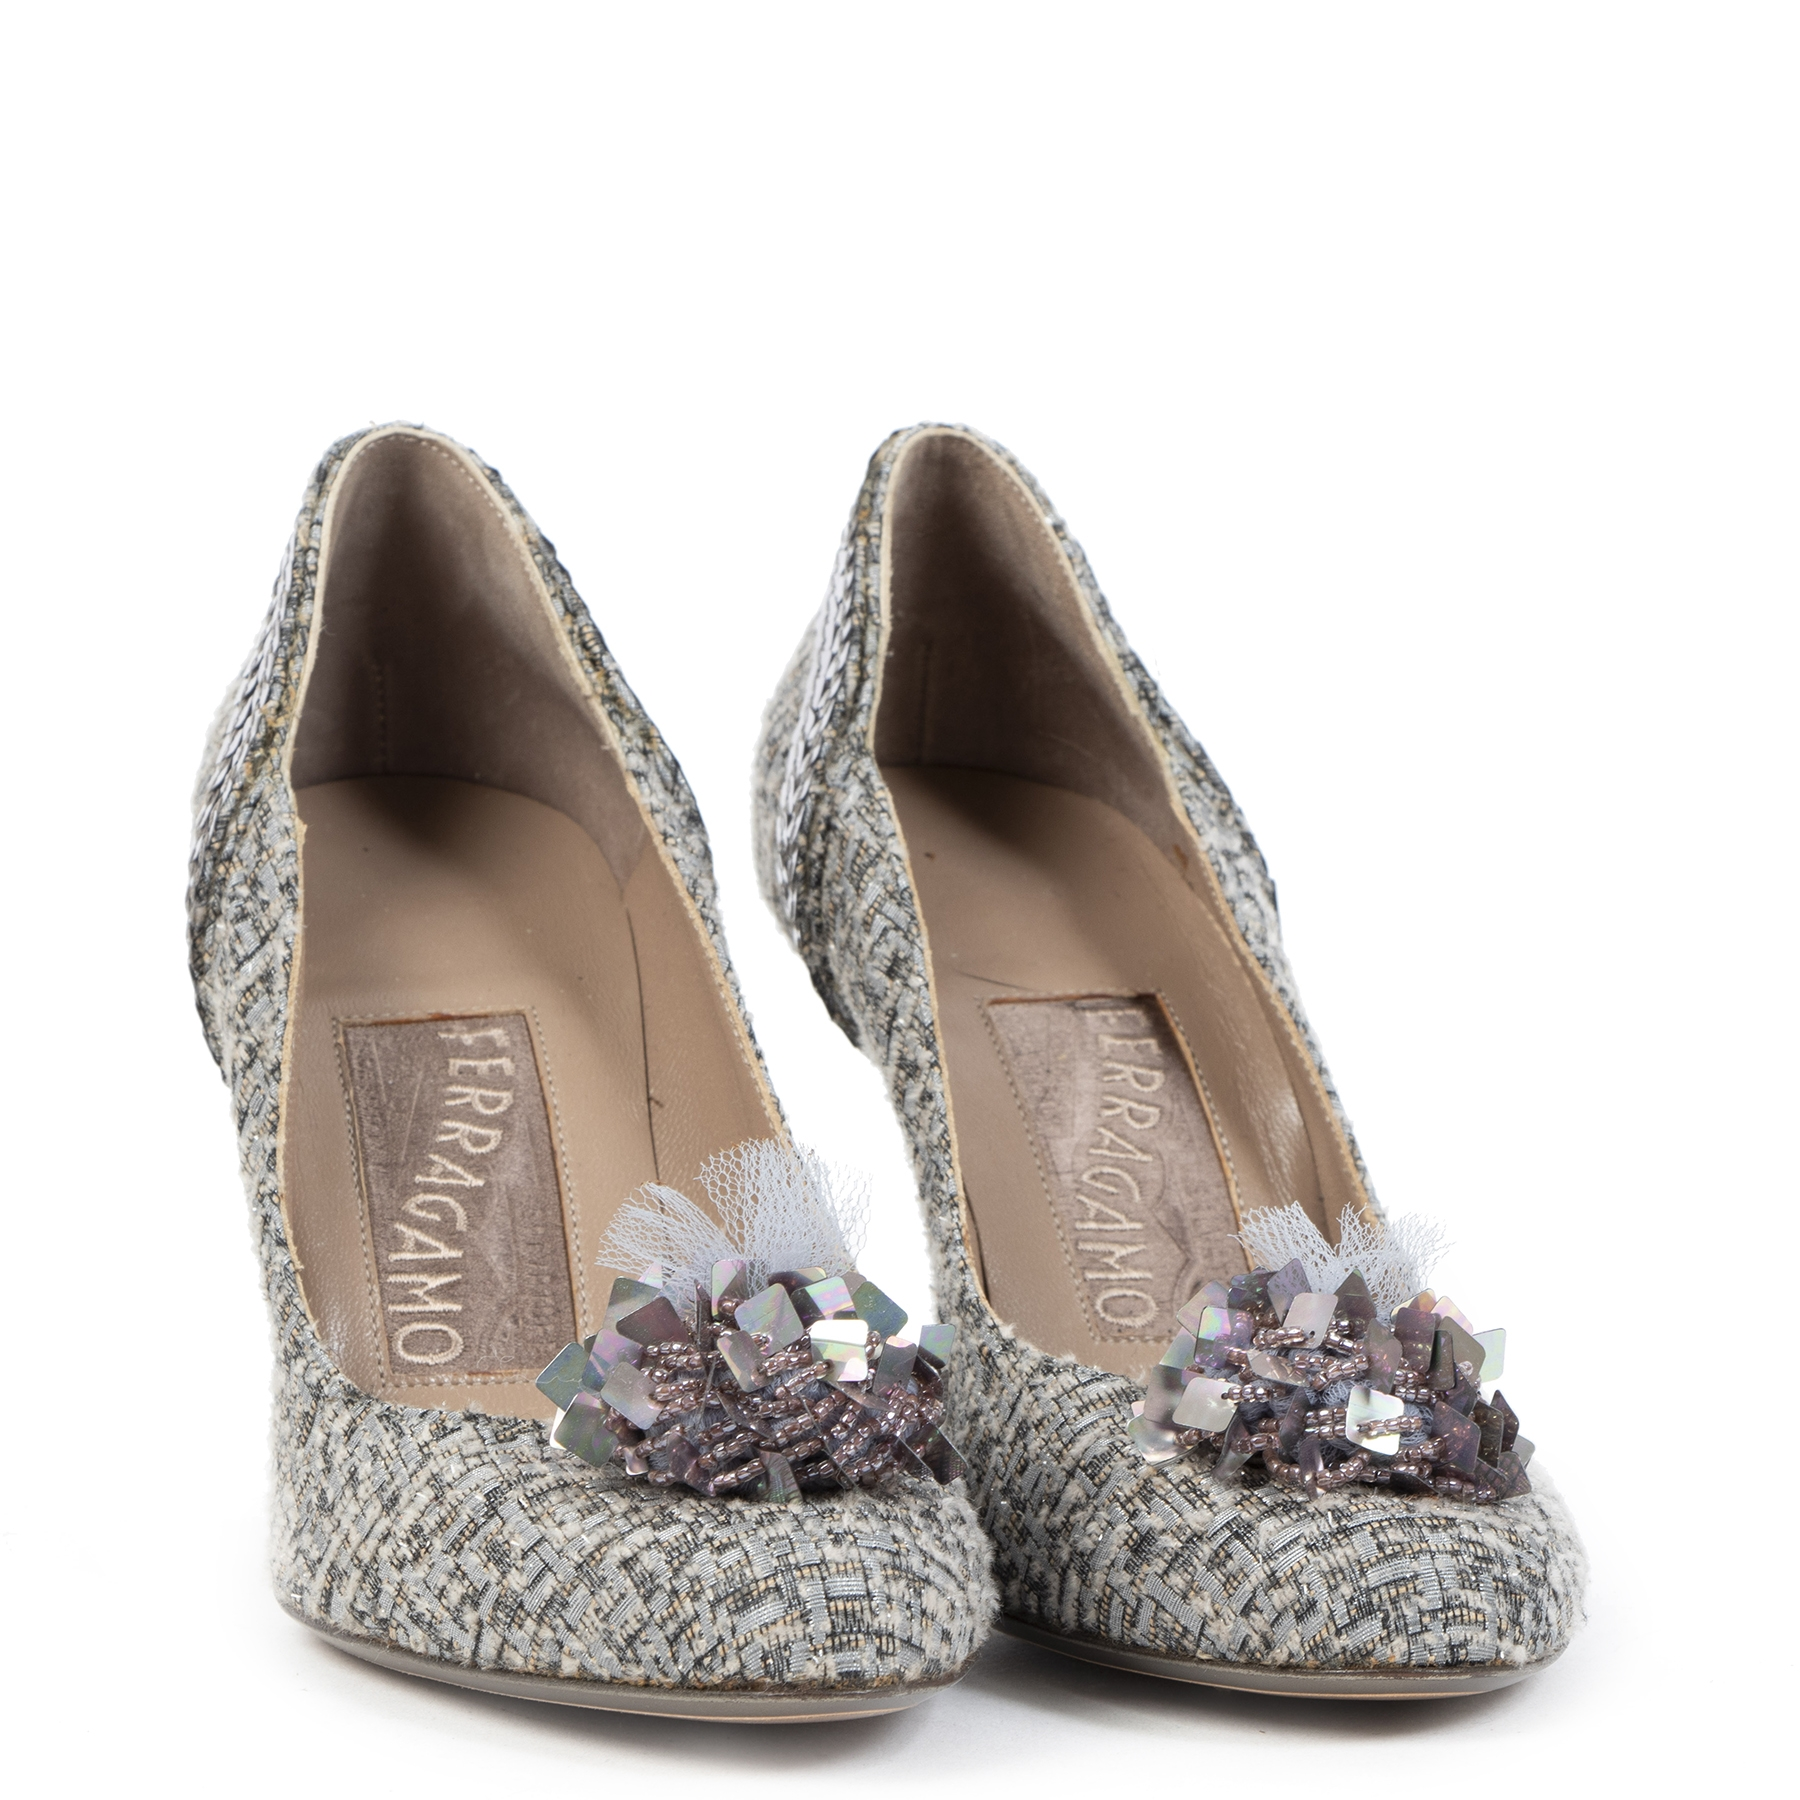 Authentic second-hand vintage Ferragamo Grey Tweed Pumps Size 37 buy online webshop LabelLOV